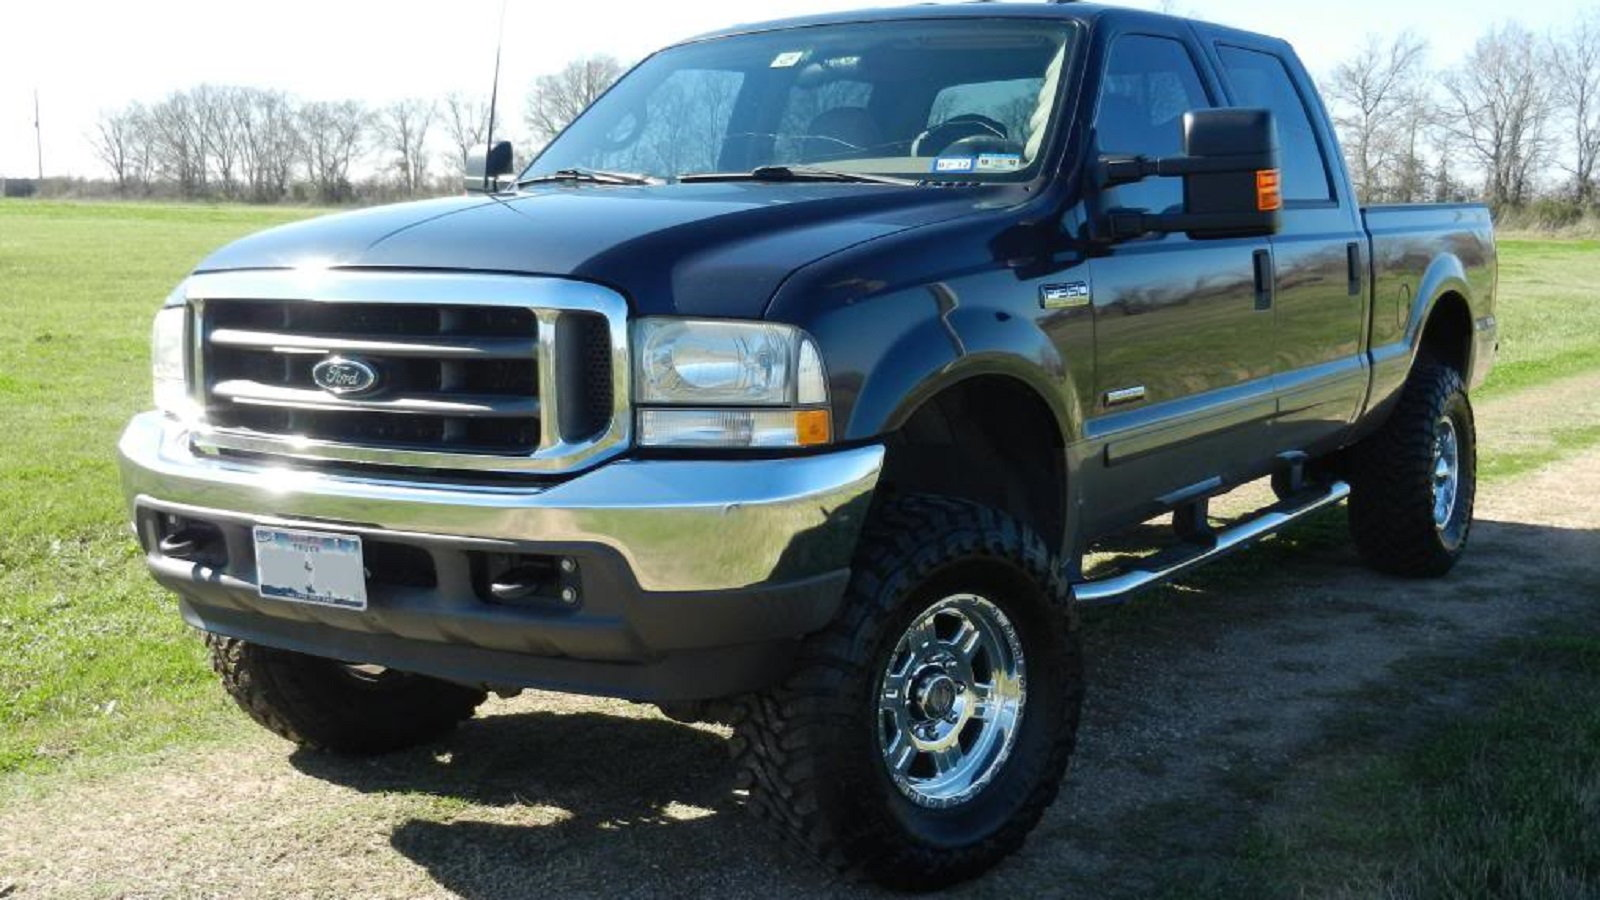 5. Generation 1 Ford F-250 with the 7.3L Powerstroke V8